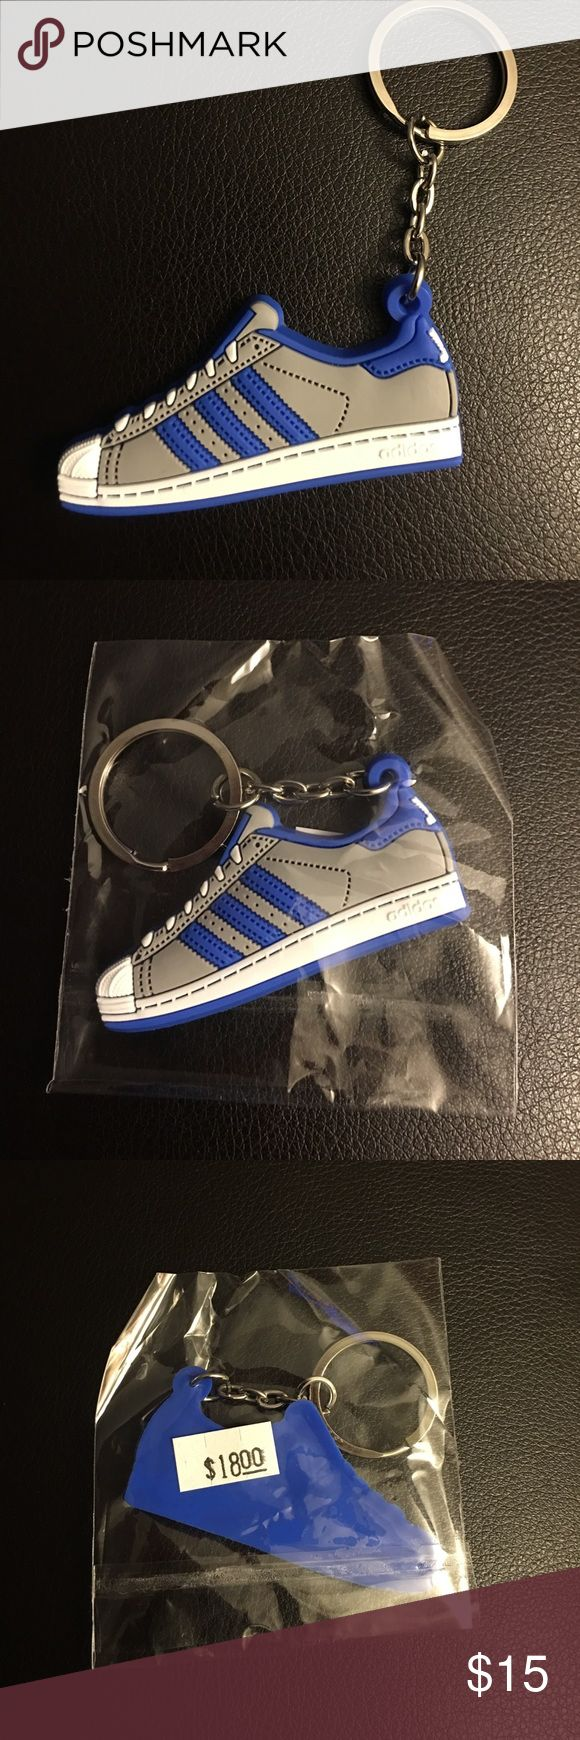 😎 Adidas Shell Toe Keychain Mini silicone Adidas Superstar Shell-tops. Color: Grey, blue, and white. Super cool looking,  New in package! Accessories Key & Card Holders